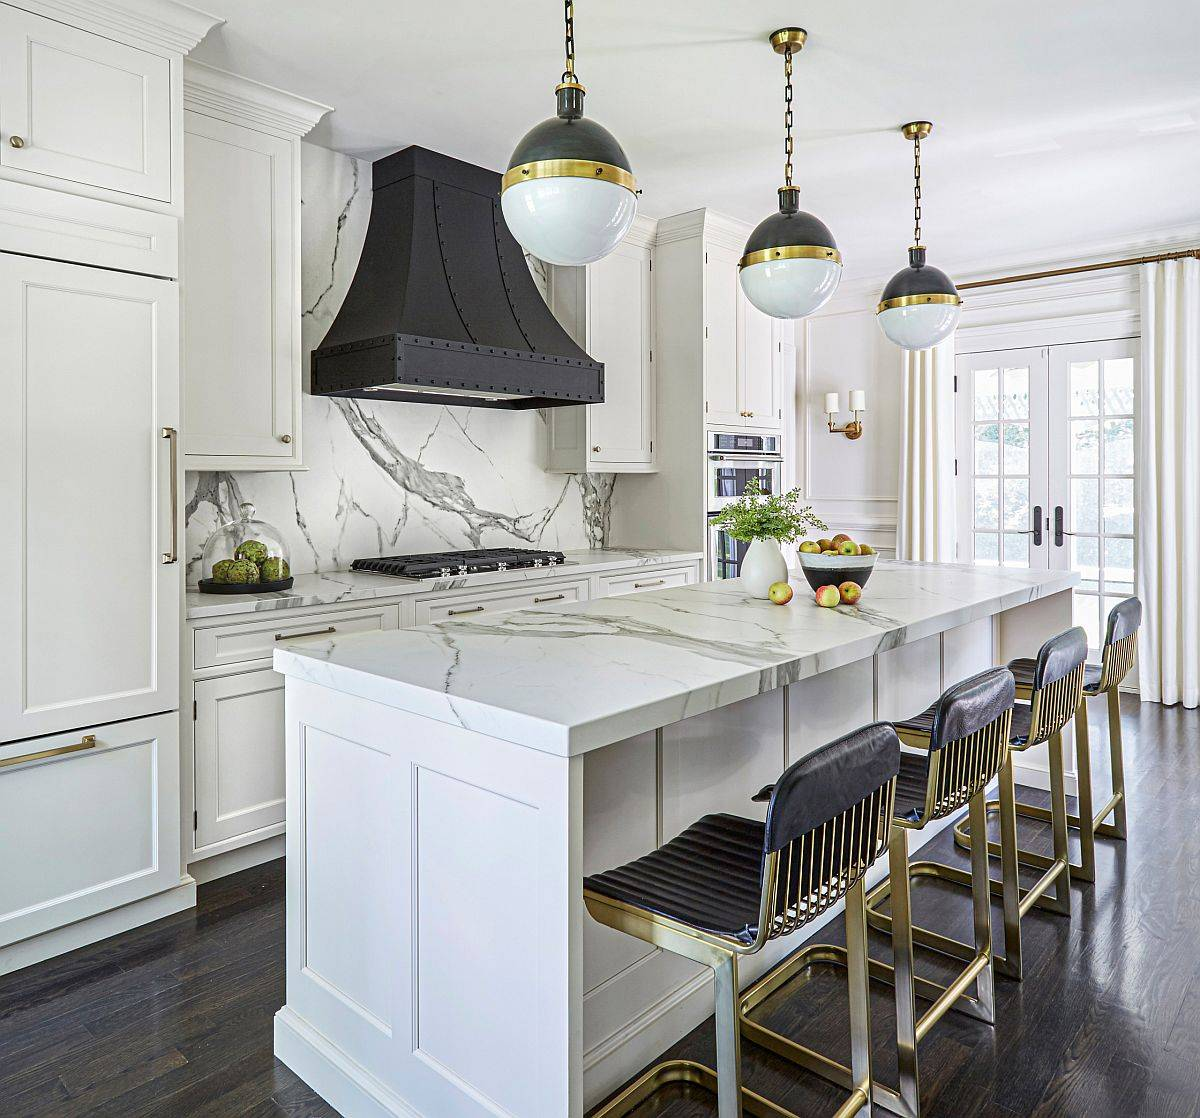 Range-and-hood-add-color-and-contrast-to-this-lovely-kitchen-in-white-12762